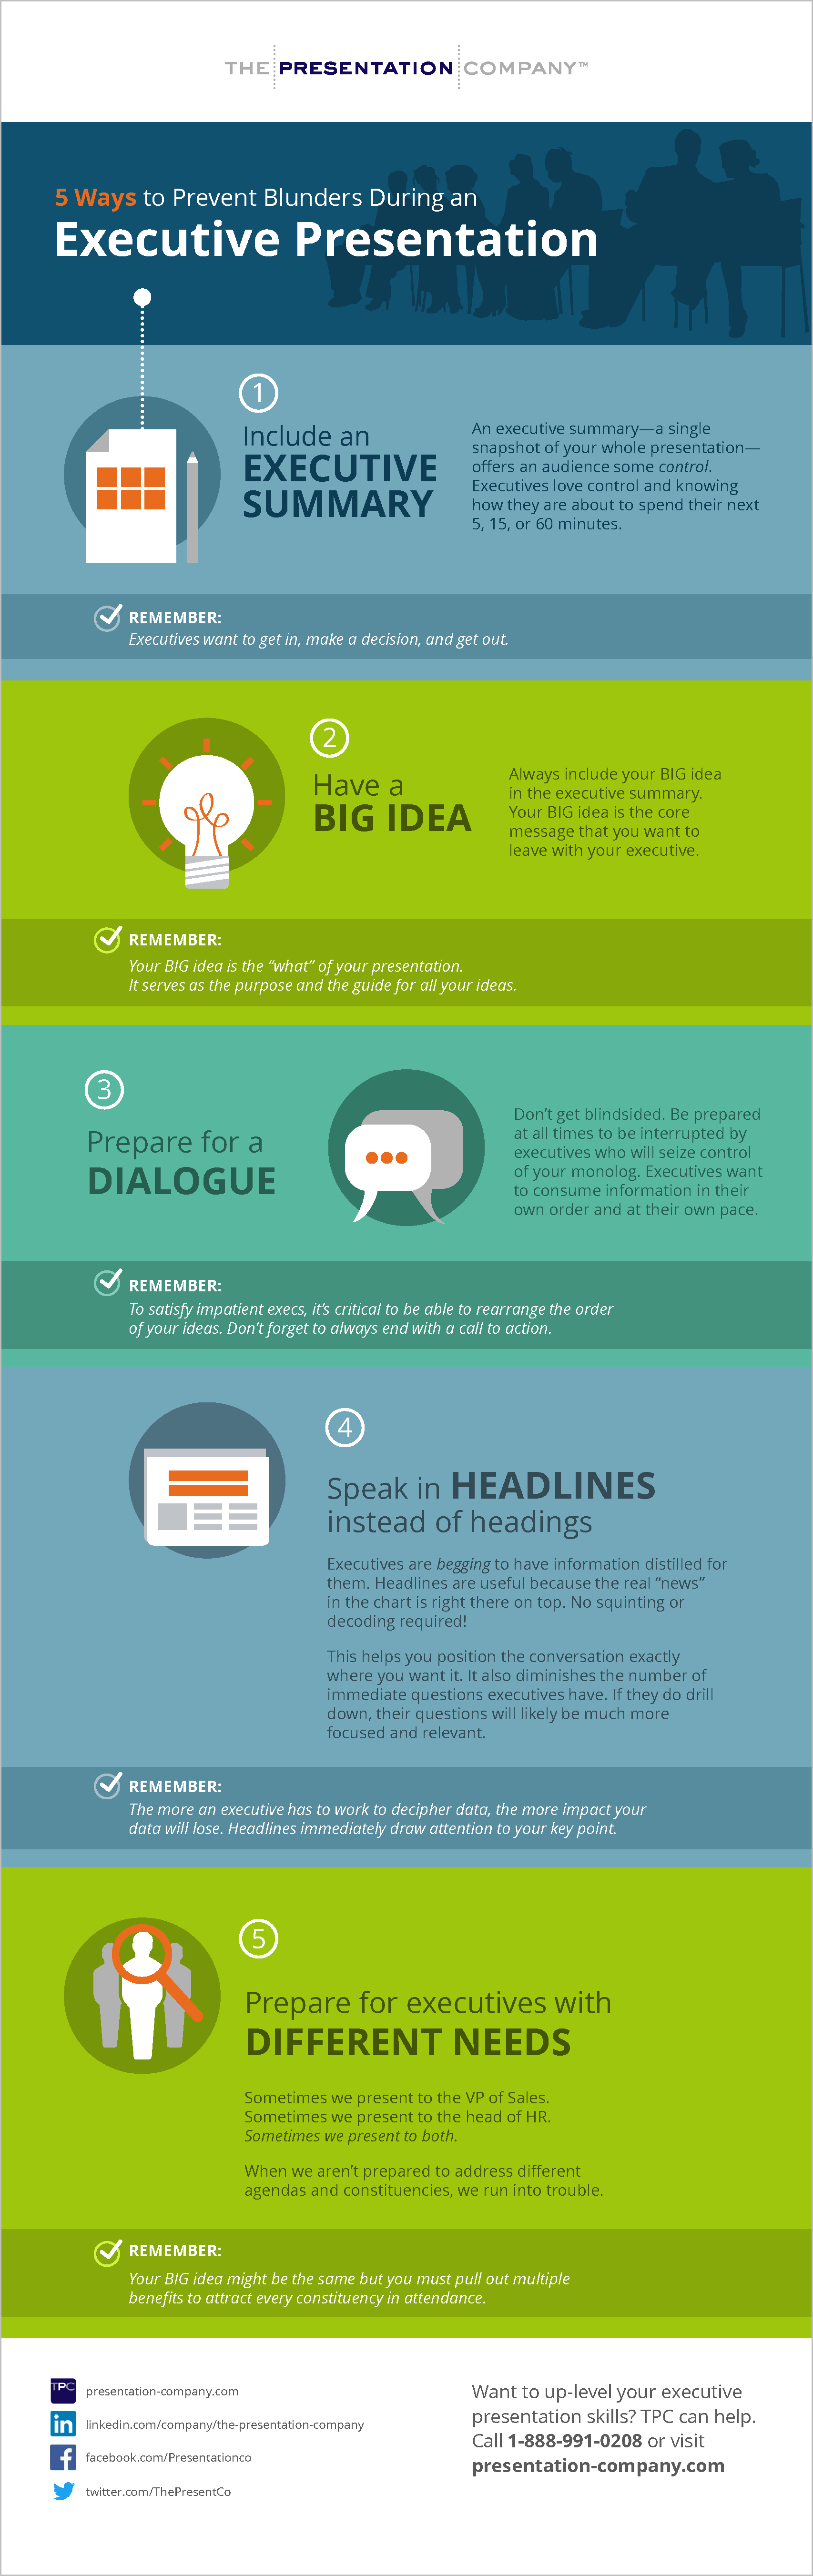 5 ways infographic FINAL_PNG-1.png